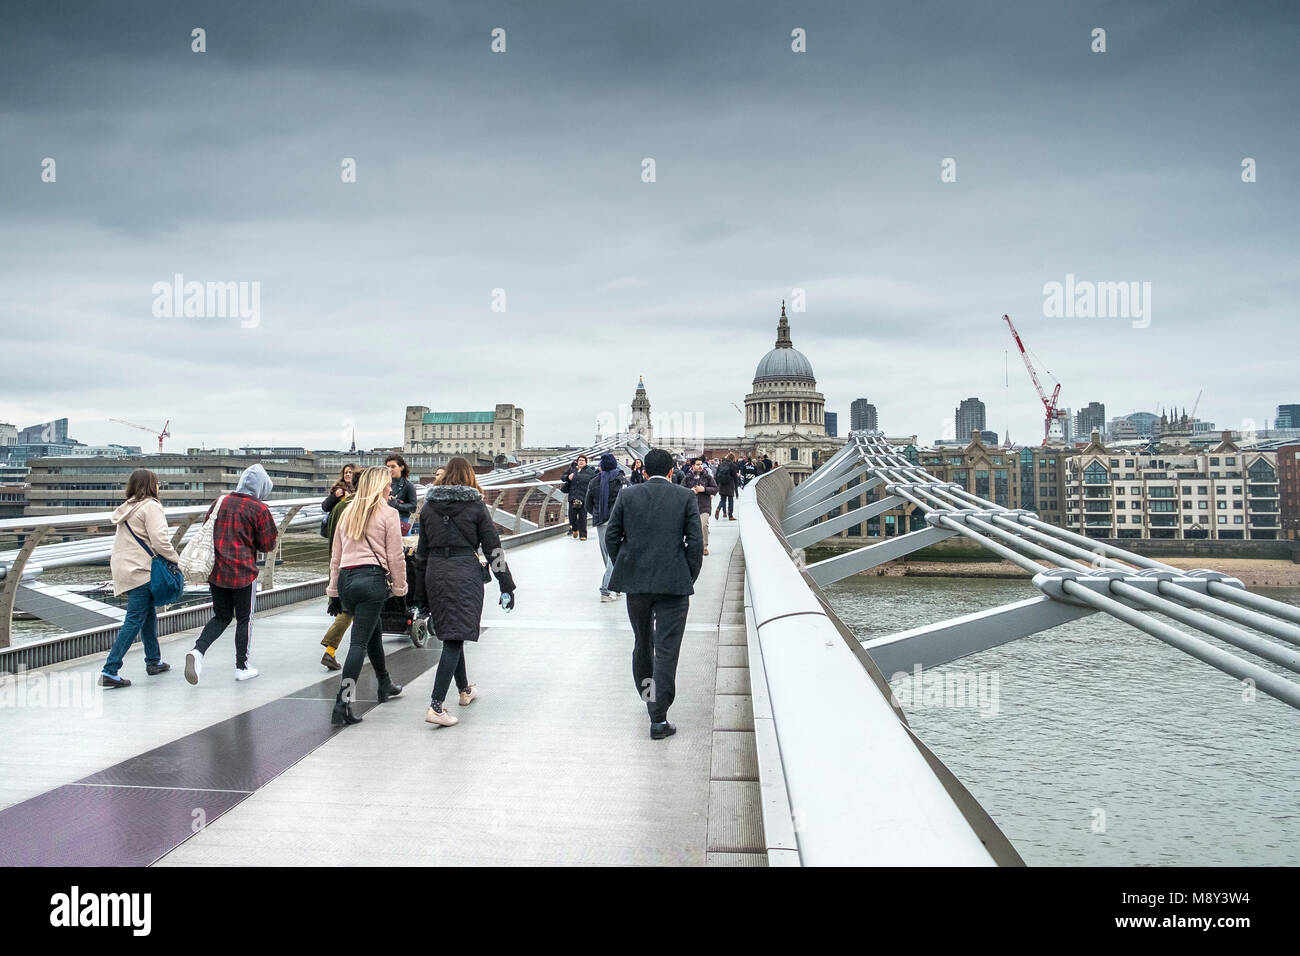 Pedestrians crossing the Millenium Bridge in London on a cold overcast day. Stock Photo